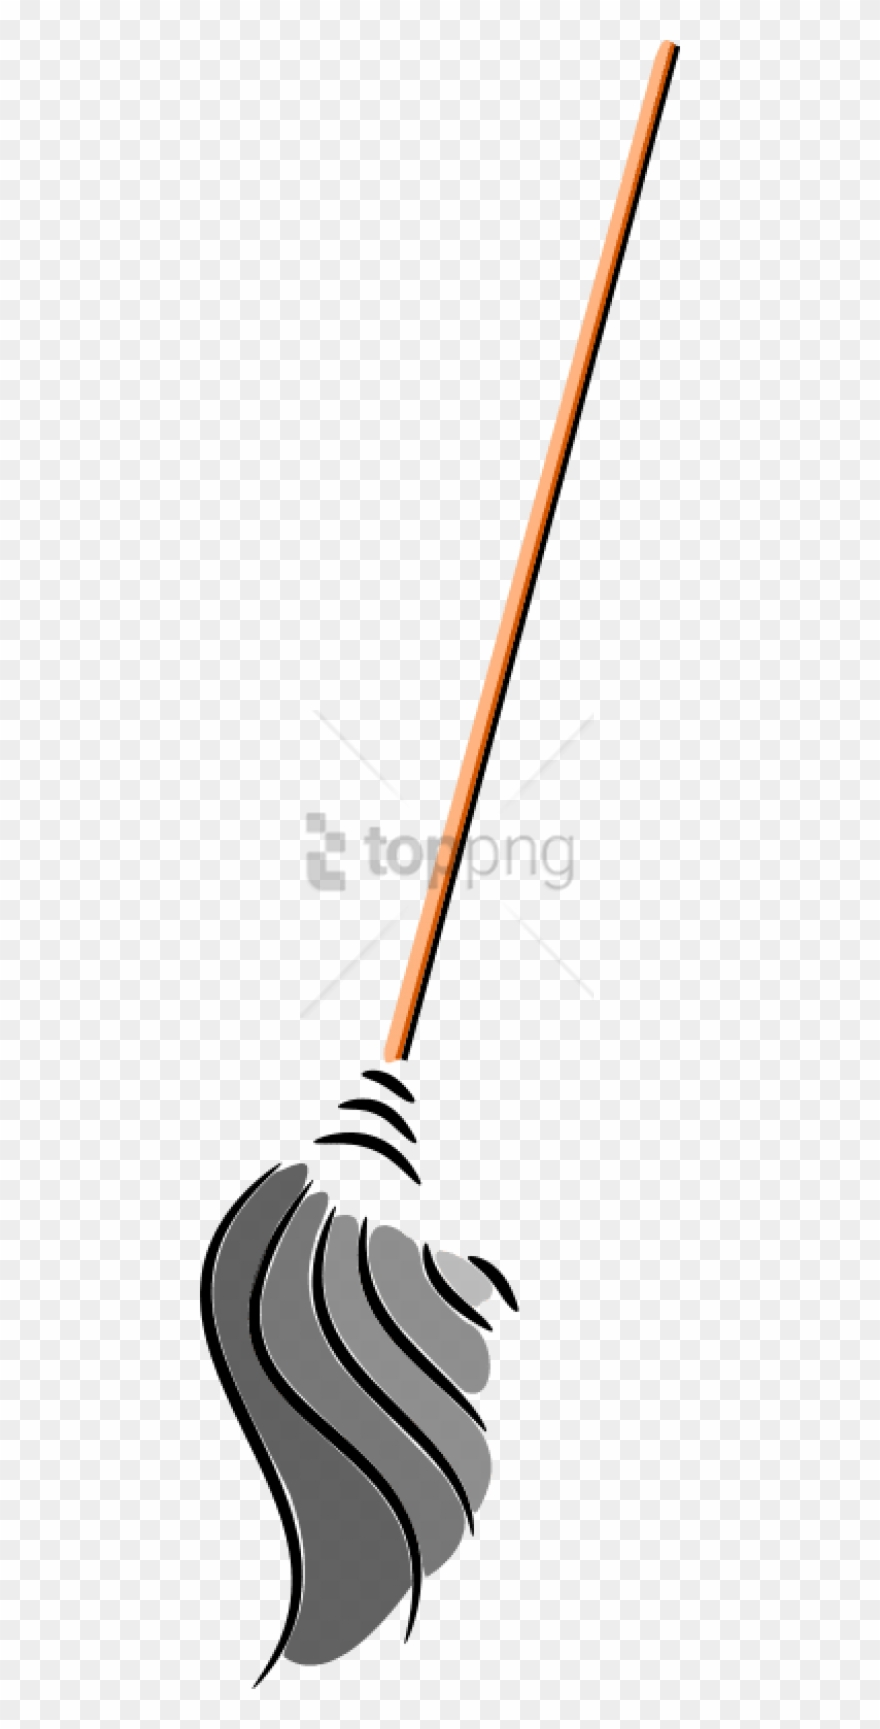 Free Png Mop Png Png Image With Transparent Background